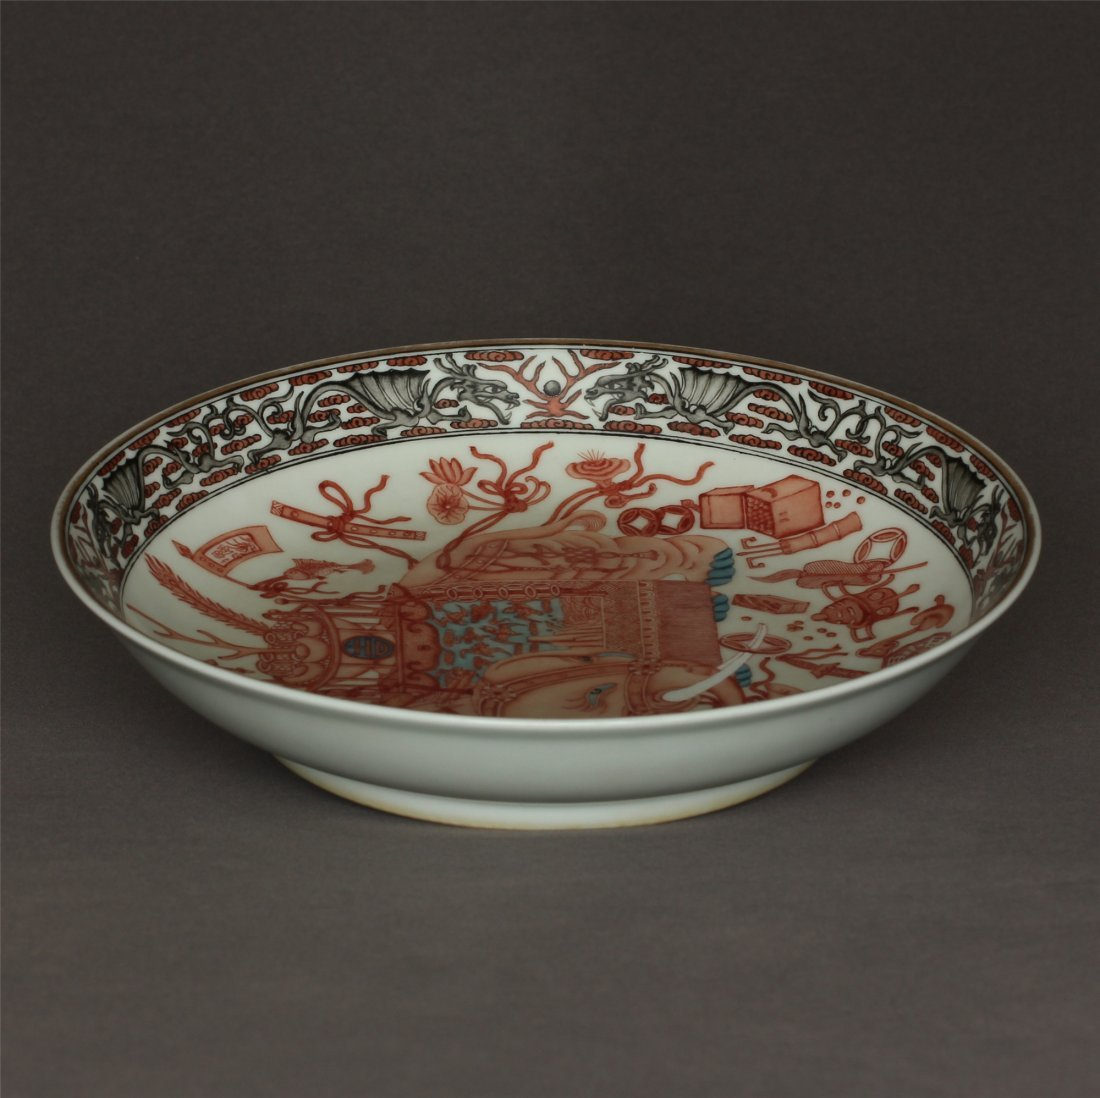 Red color porcelain plate of Qing Dynasty QianLong